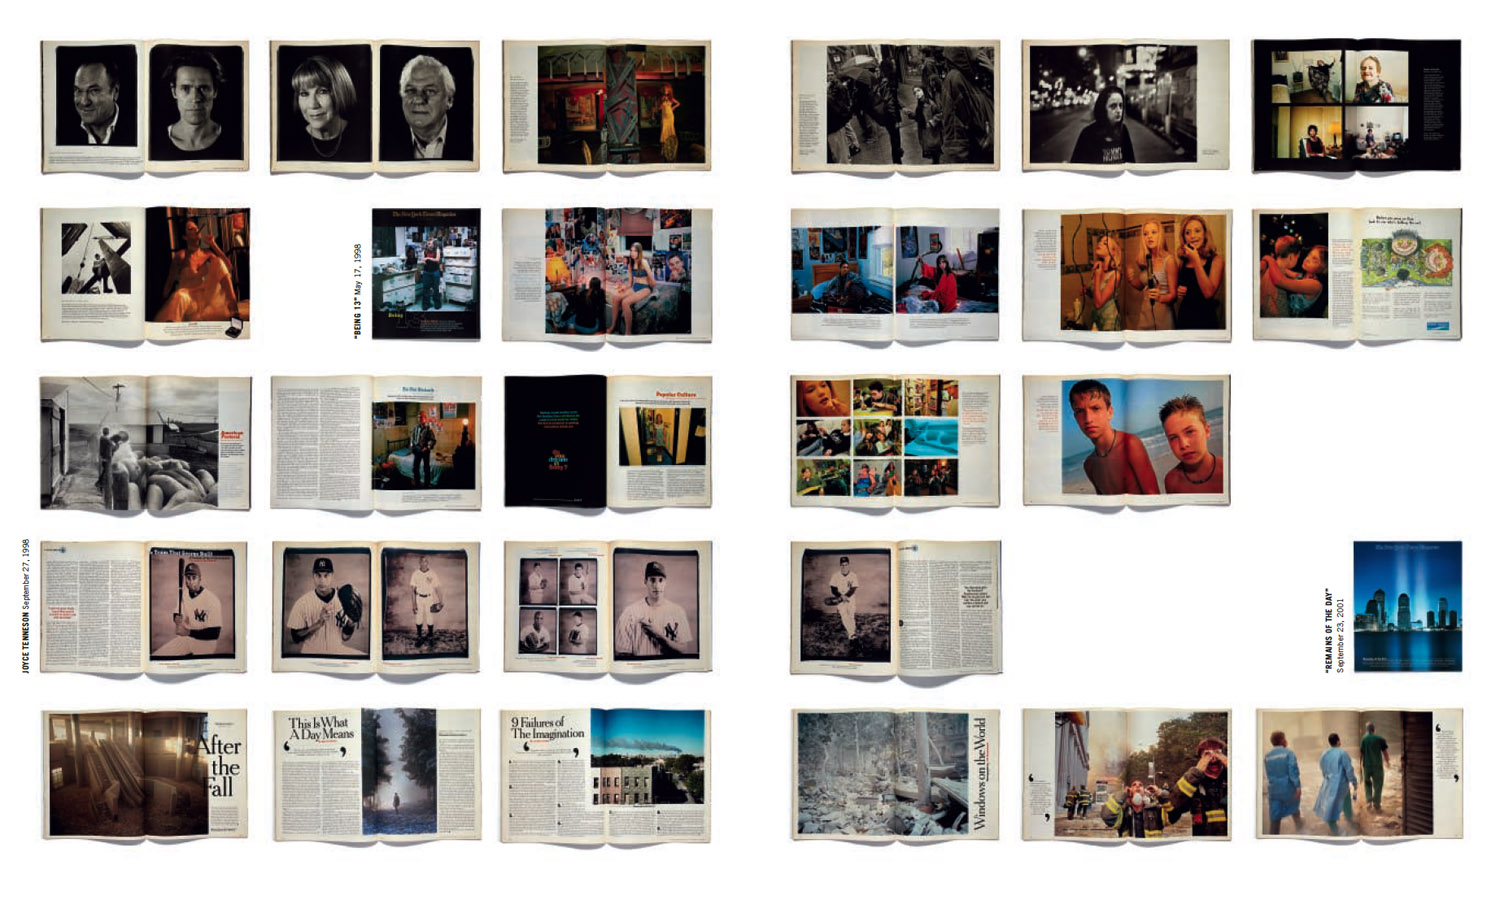 A spread showing original layouts as published in the forthcoming book The New York Times Magazine Photographs, a retrospective of the last three decades, edited by Kathy Ryan and published by Aperture.